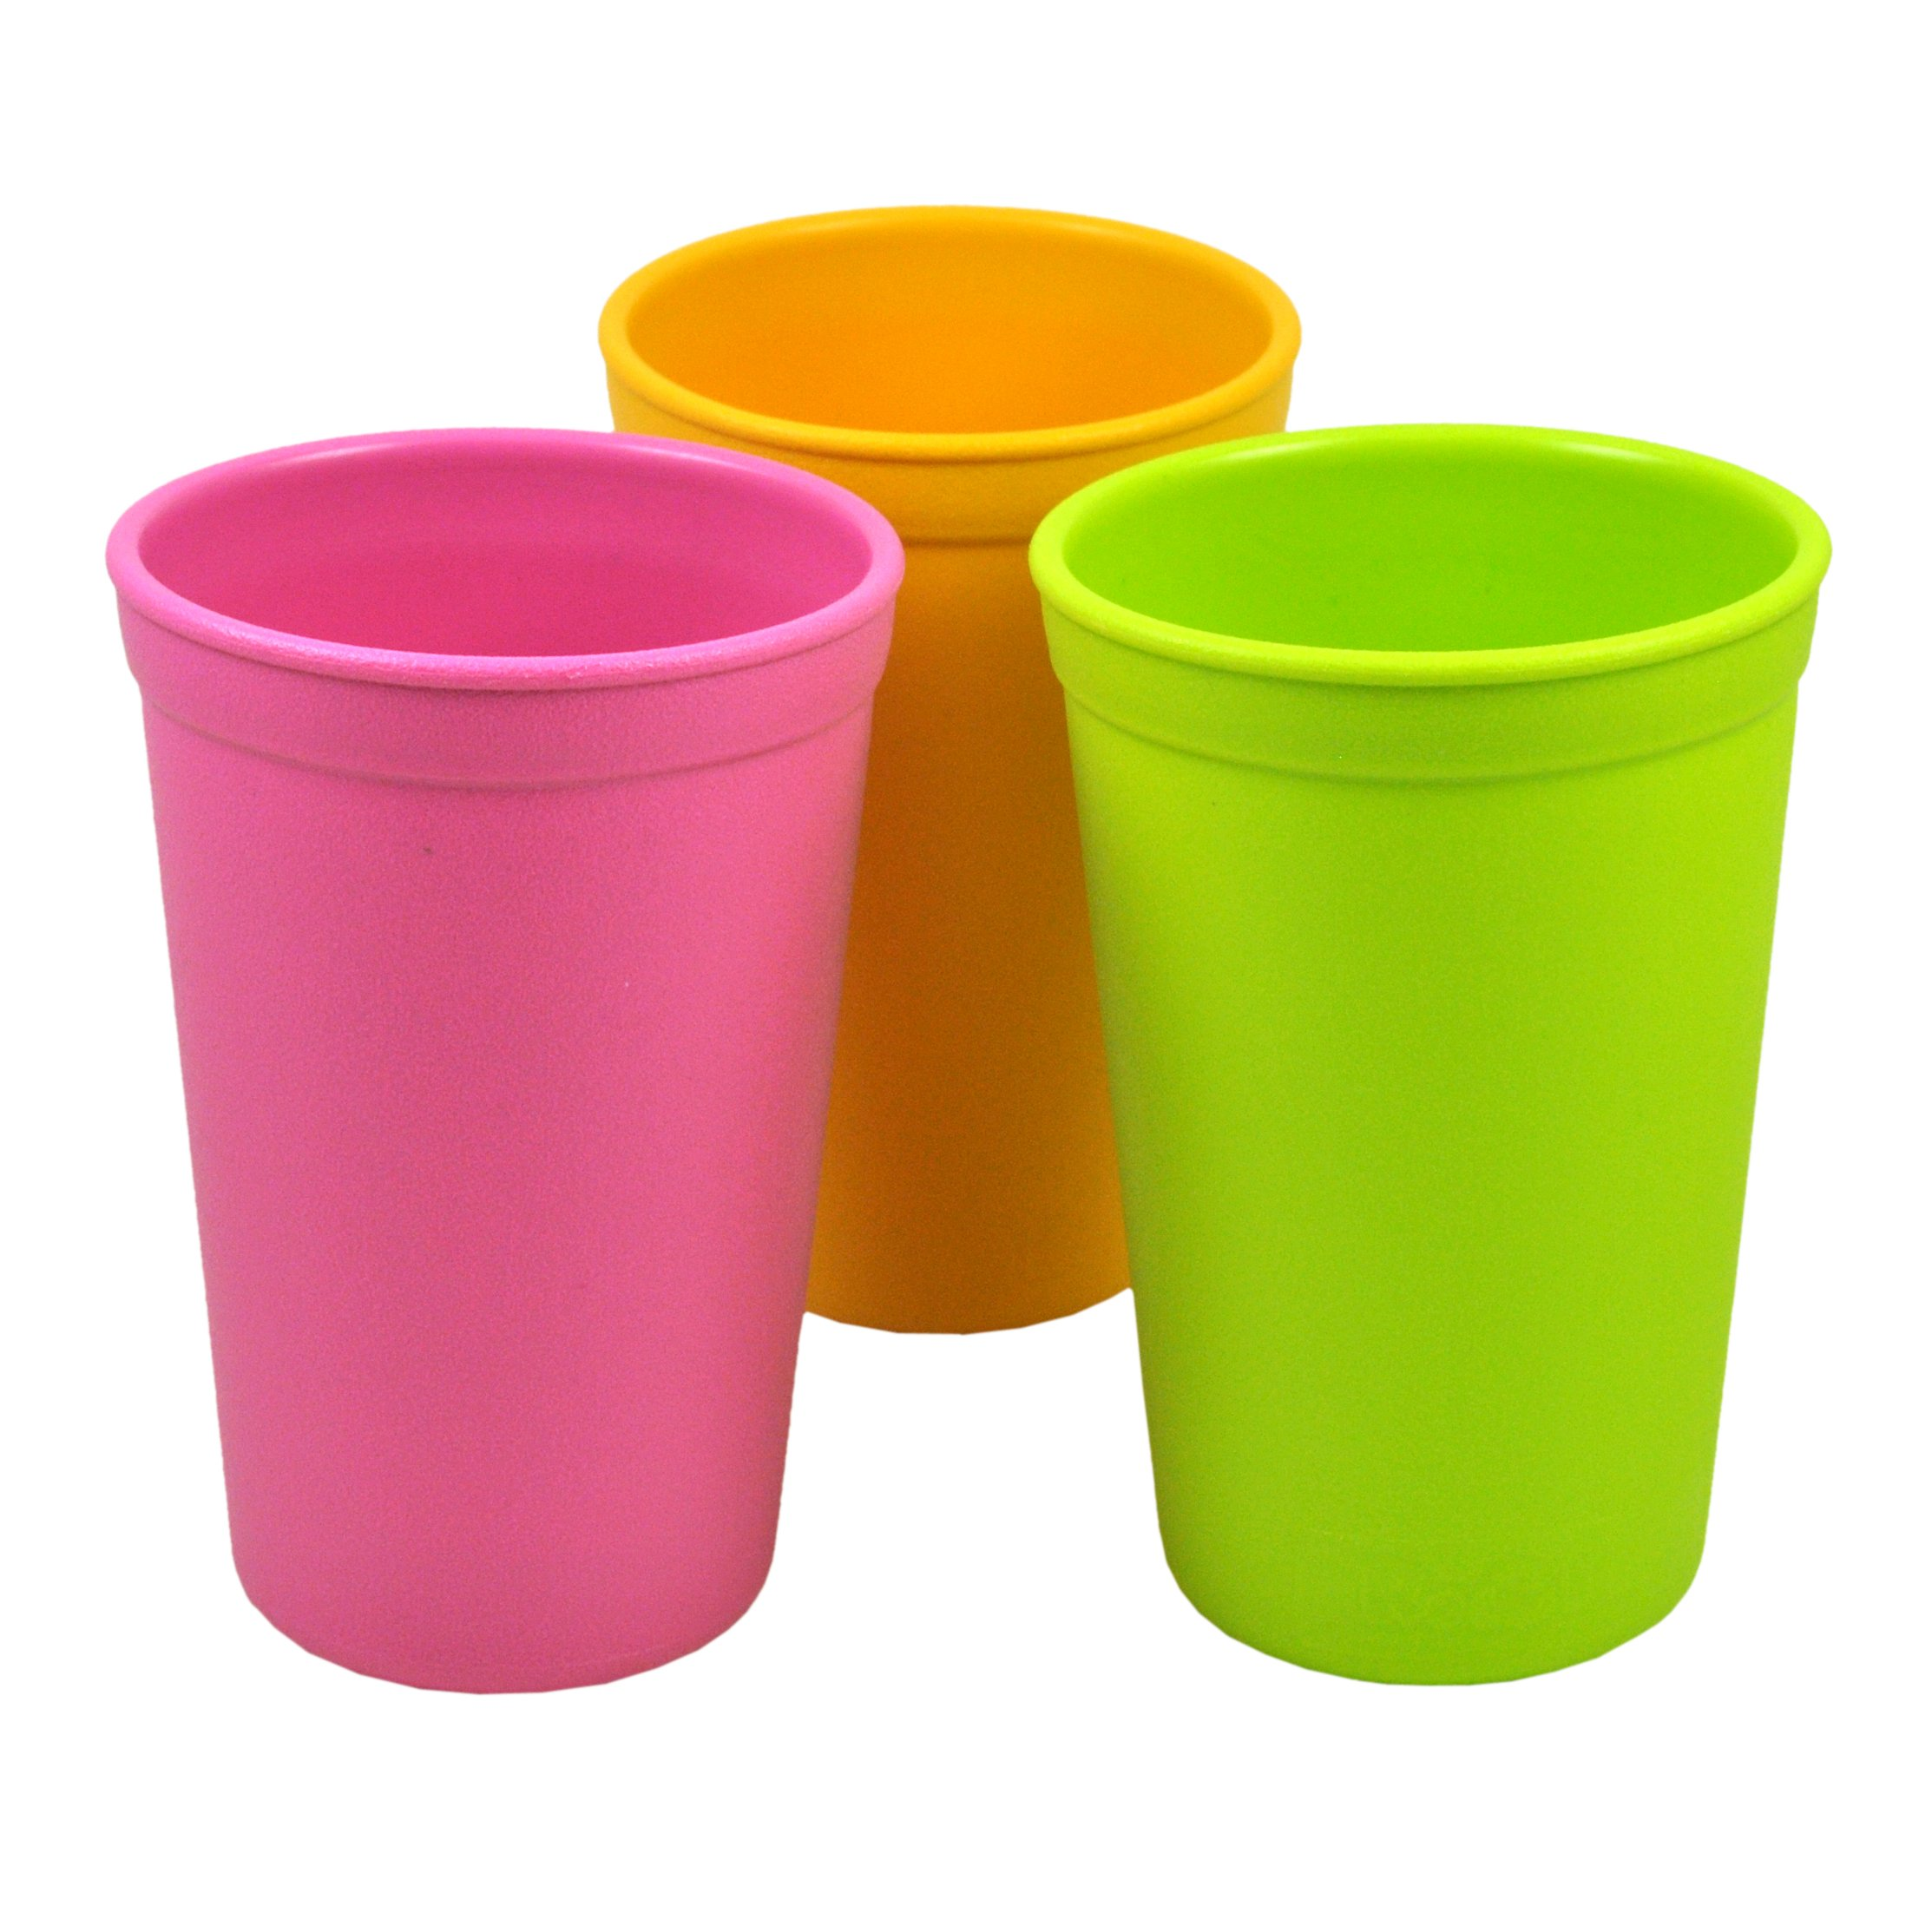 Re-Play 3pk - 9oz. Drinking Cups | Made in USA from Eco Friendly Heavyweight Recycled Milk Jugs - Virtually Indestructible | For all ages | Bright Pink, Sunny Yellow, Lime Green | Pink Asst.